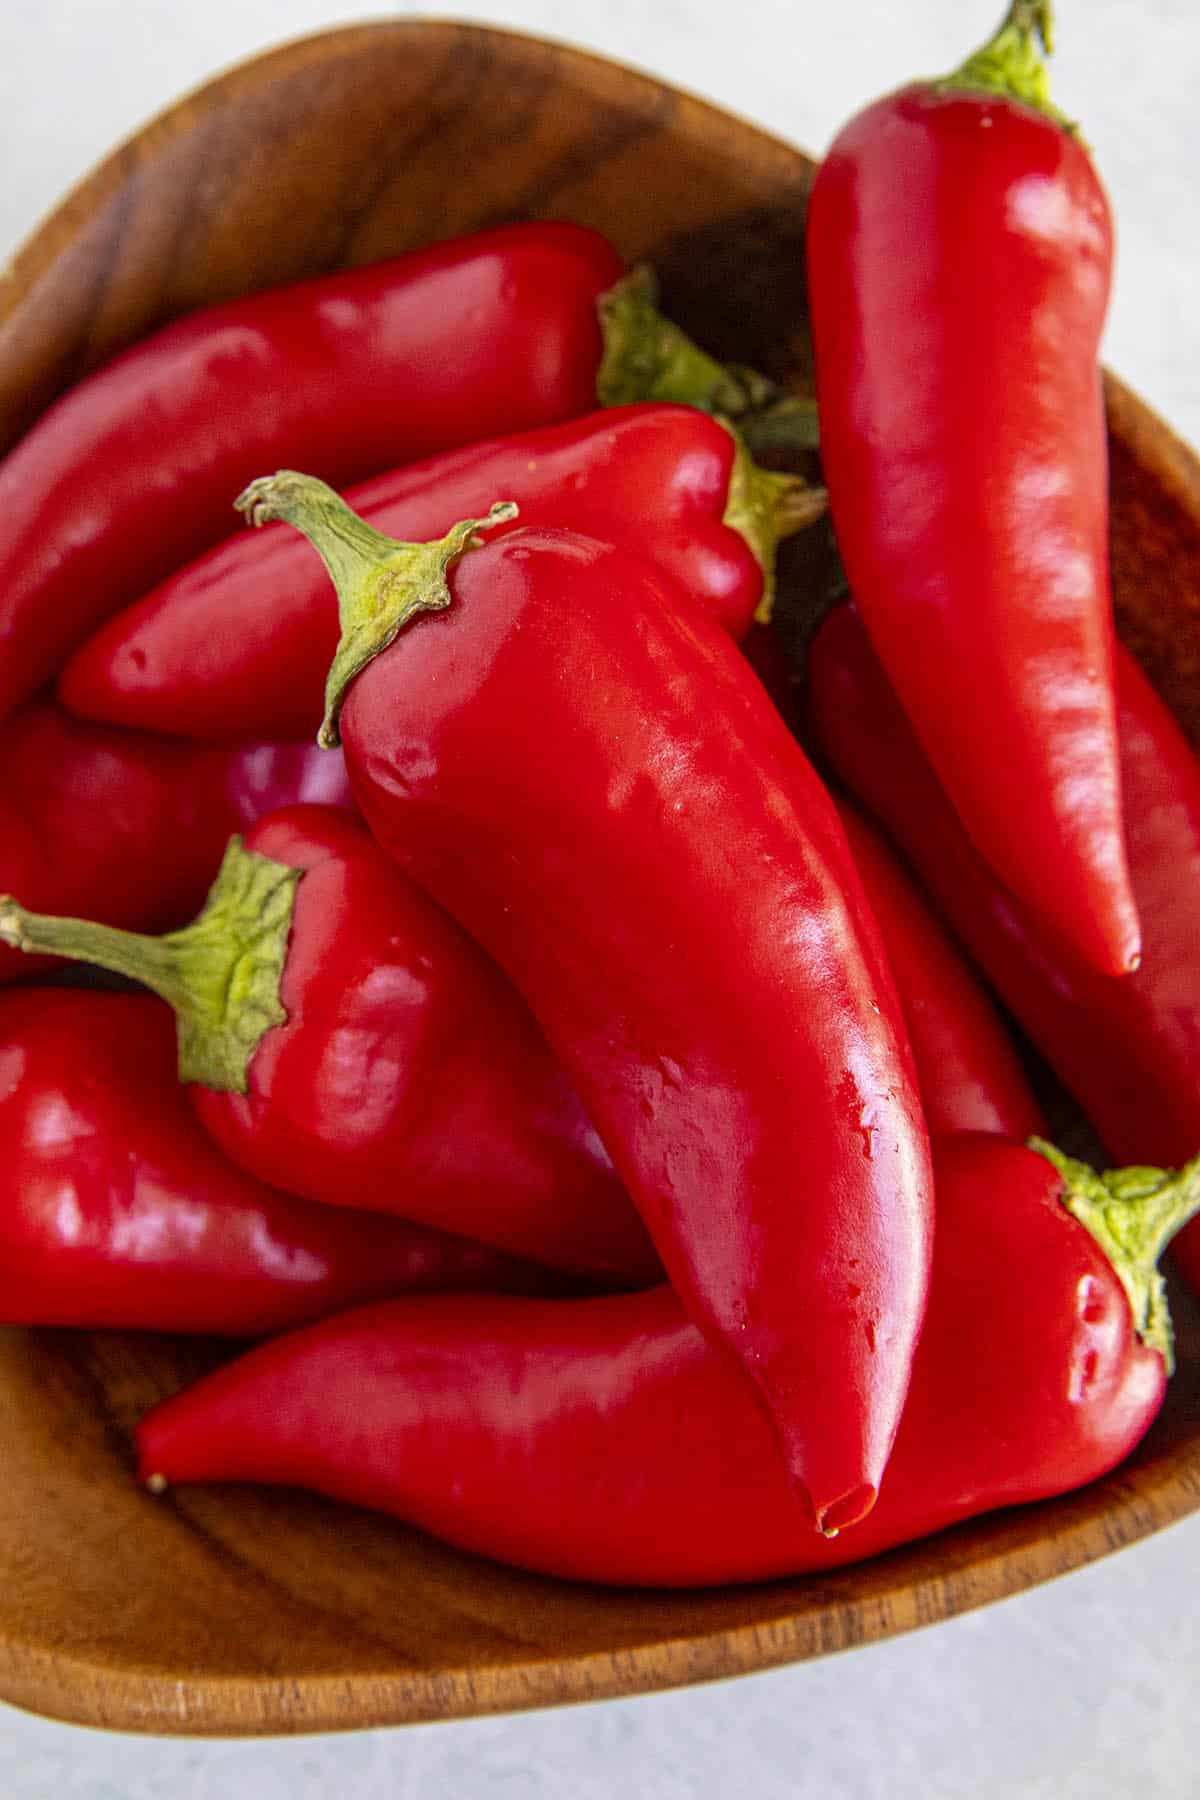 Fresno Pepper – Much Like a Jalapeno